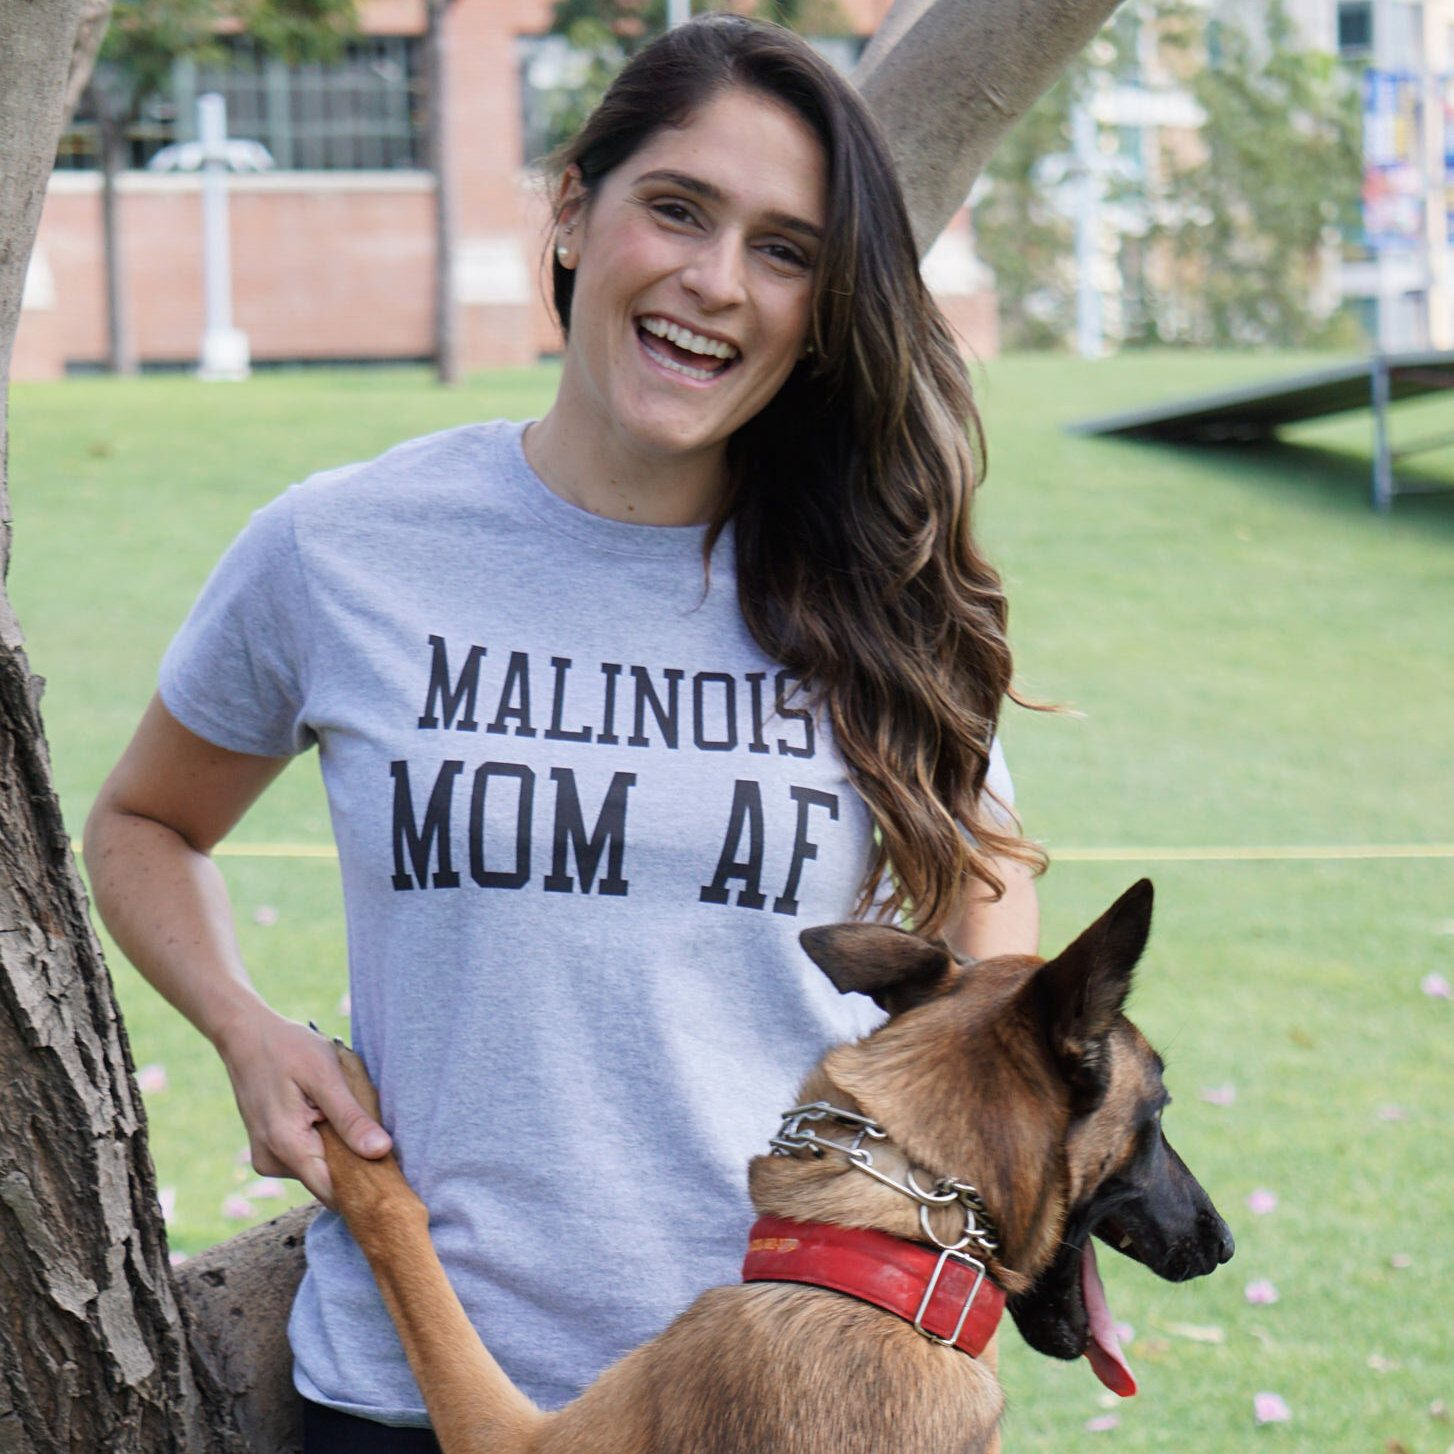 Excited To Share The Latest Addition To My Etsy Shop Belgian Malinois Malinois Mom Af Belgian Malinois Mom Dog M Malinois Belgian Malinois Malinois Dog